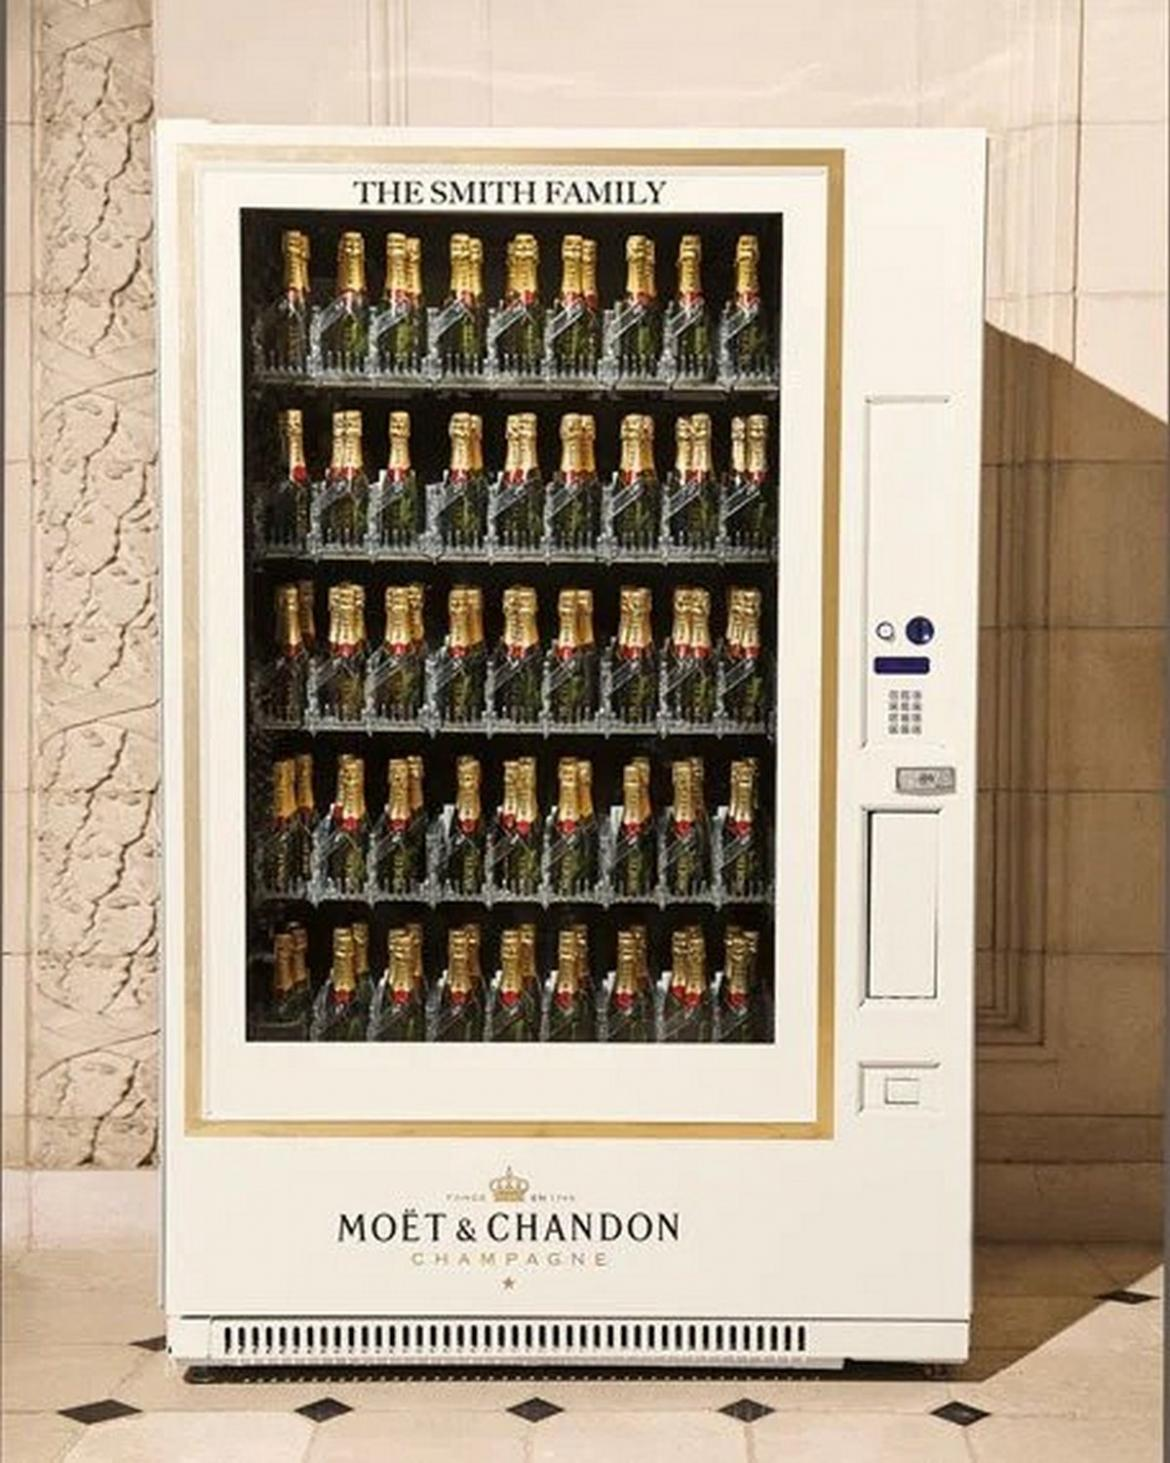 Never run out of bubbly - Now you can buy you very own Moët & Chandon champagne vending machine for $35,000 -